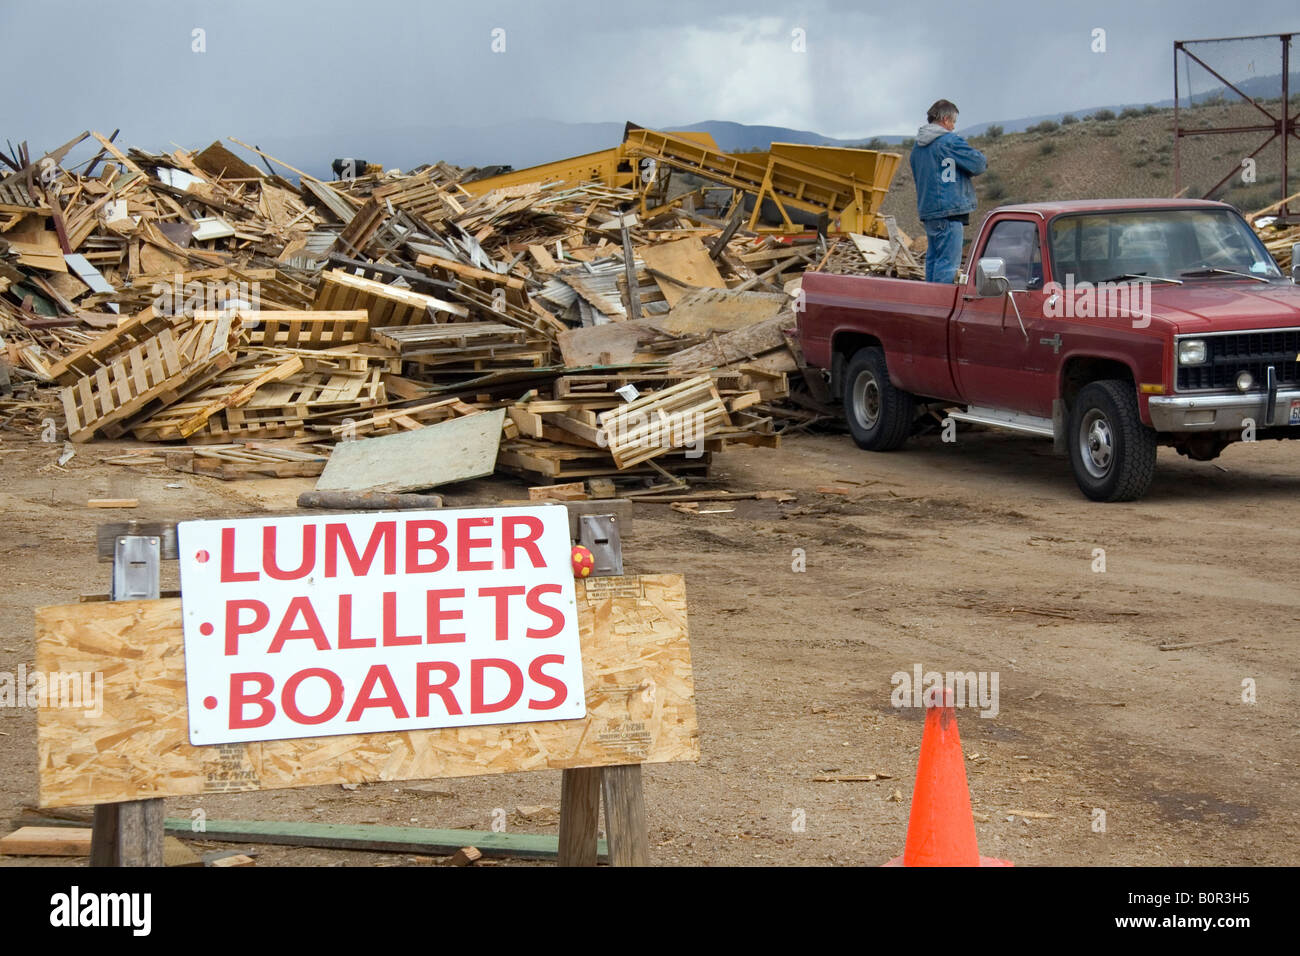 Building material recycling at the Ada County Landfill in Boise Idaho - Stock Image